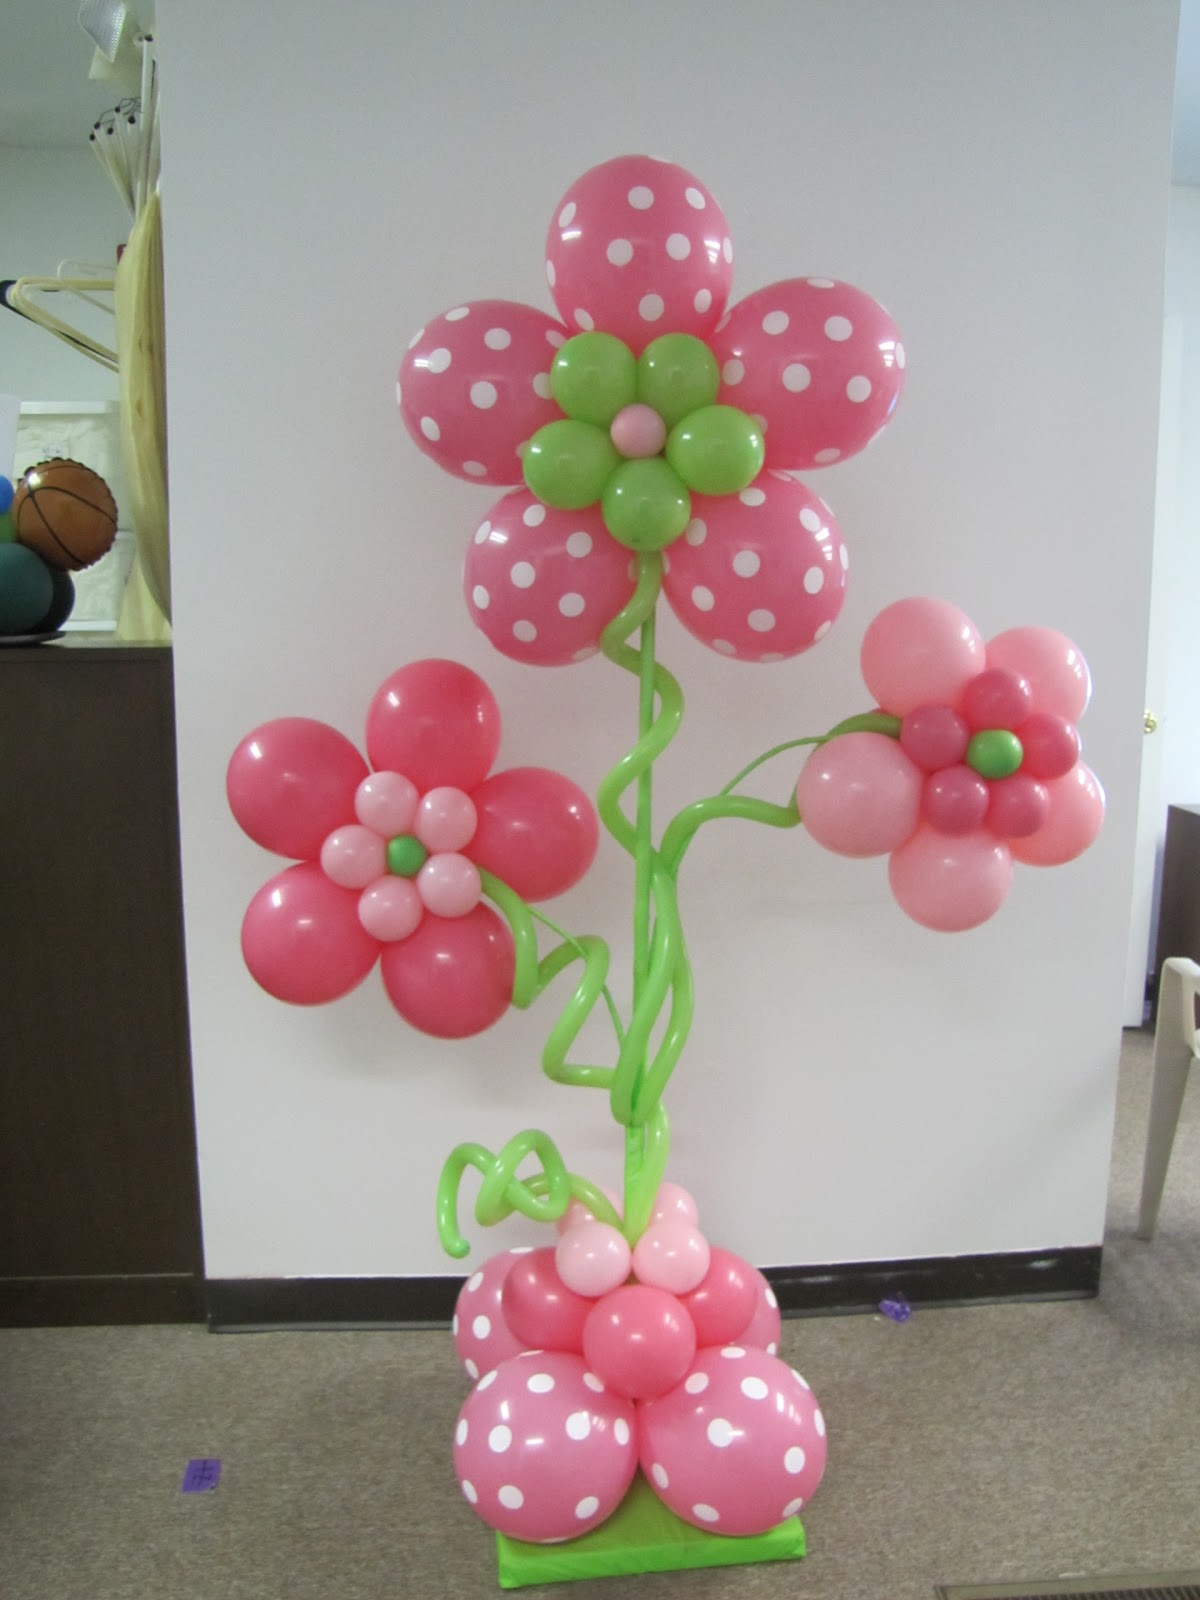 Design classic interior 2012 como decorar un baby shower for Decoracion simple con globos